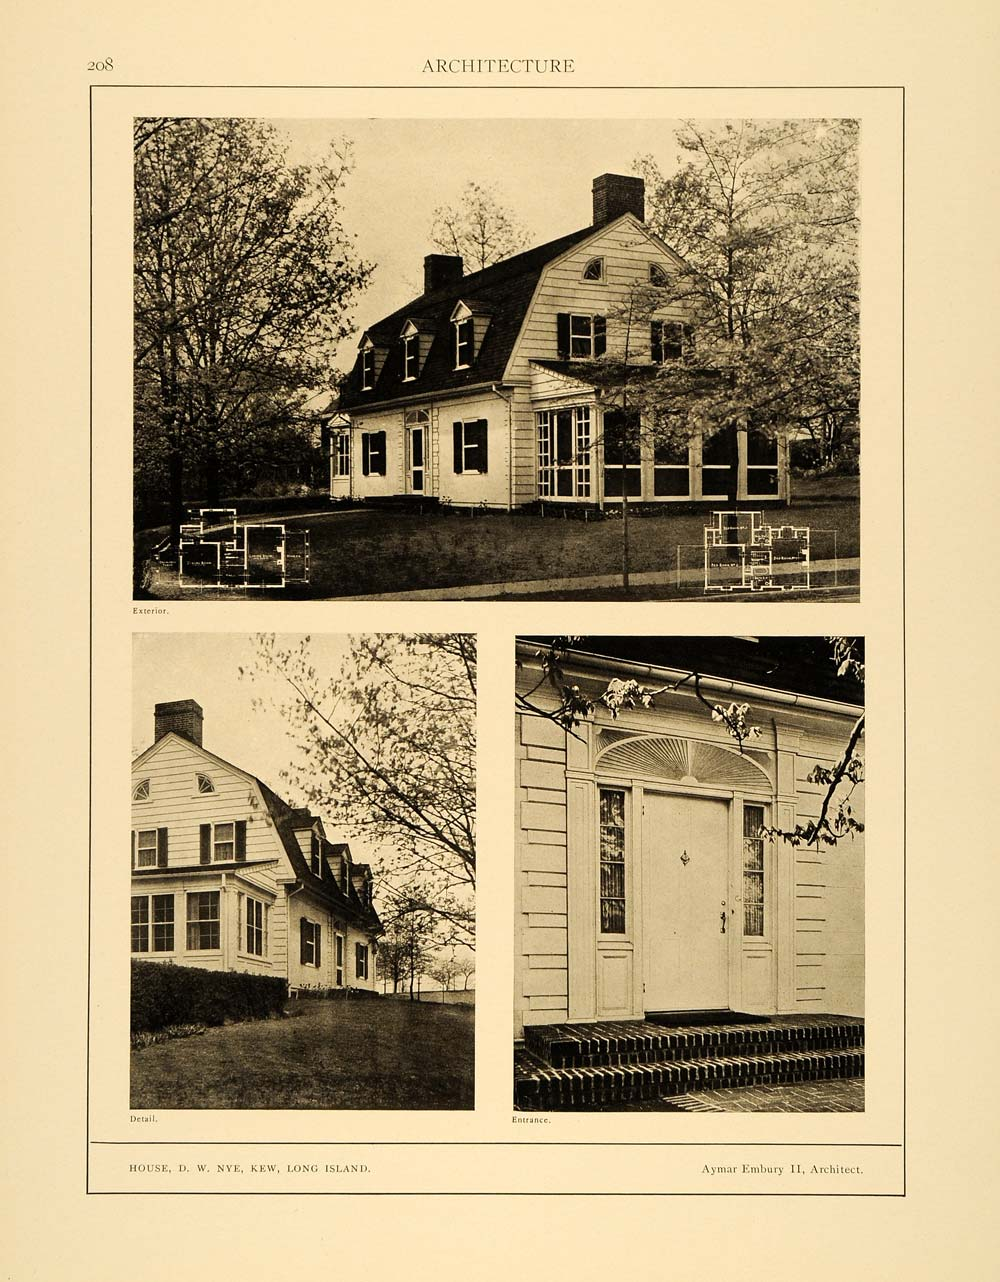 1915 Print D. W. Home Kew Long Island New York Architecture Aymar Embury II ARC4